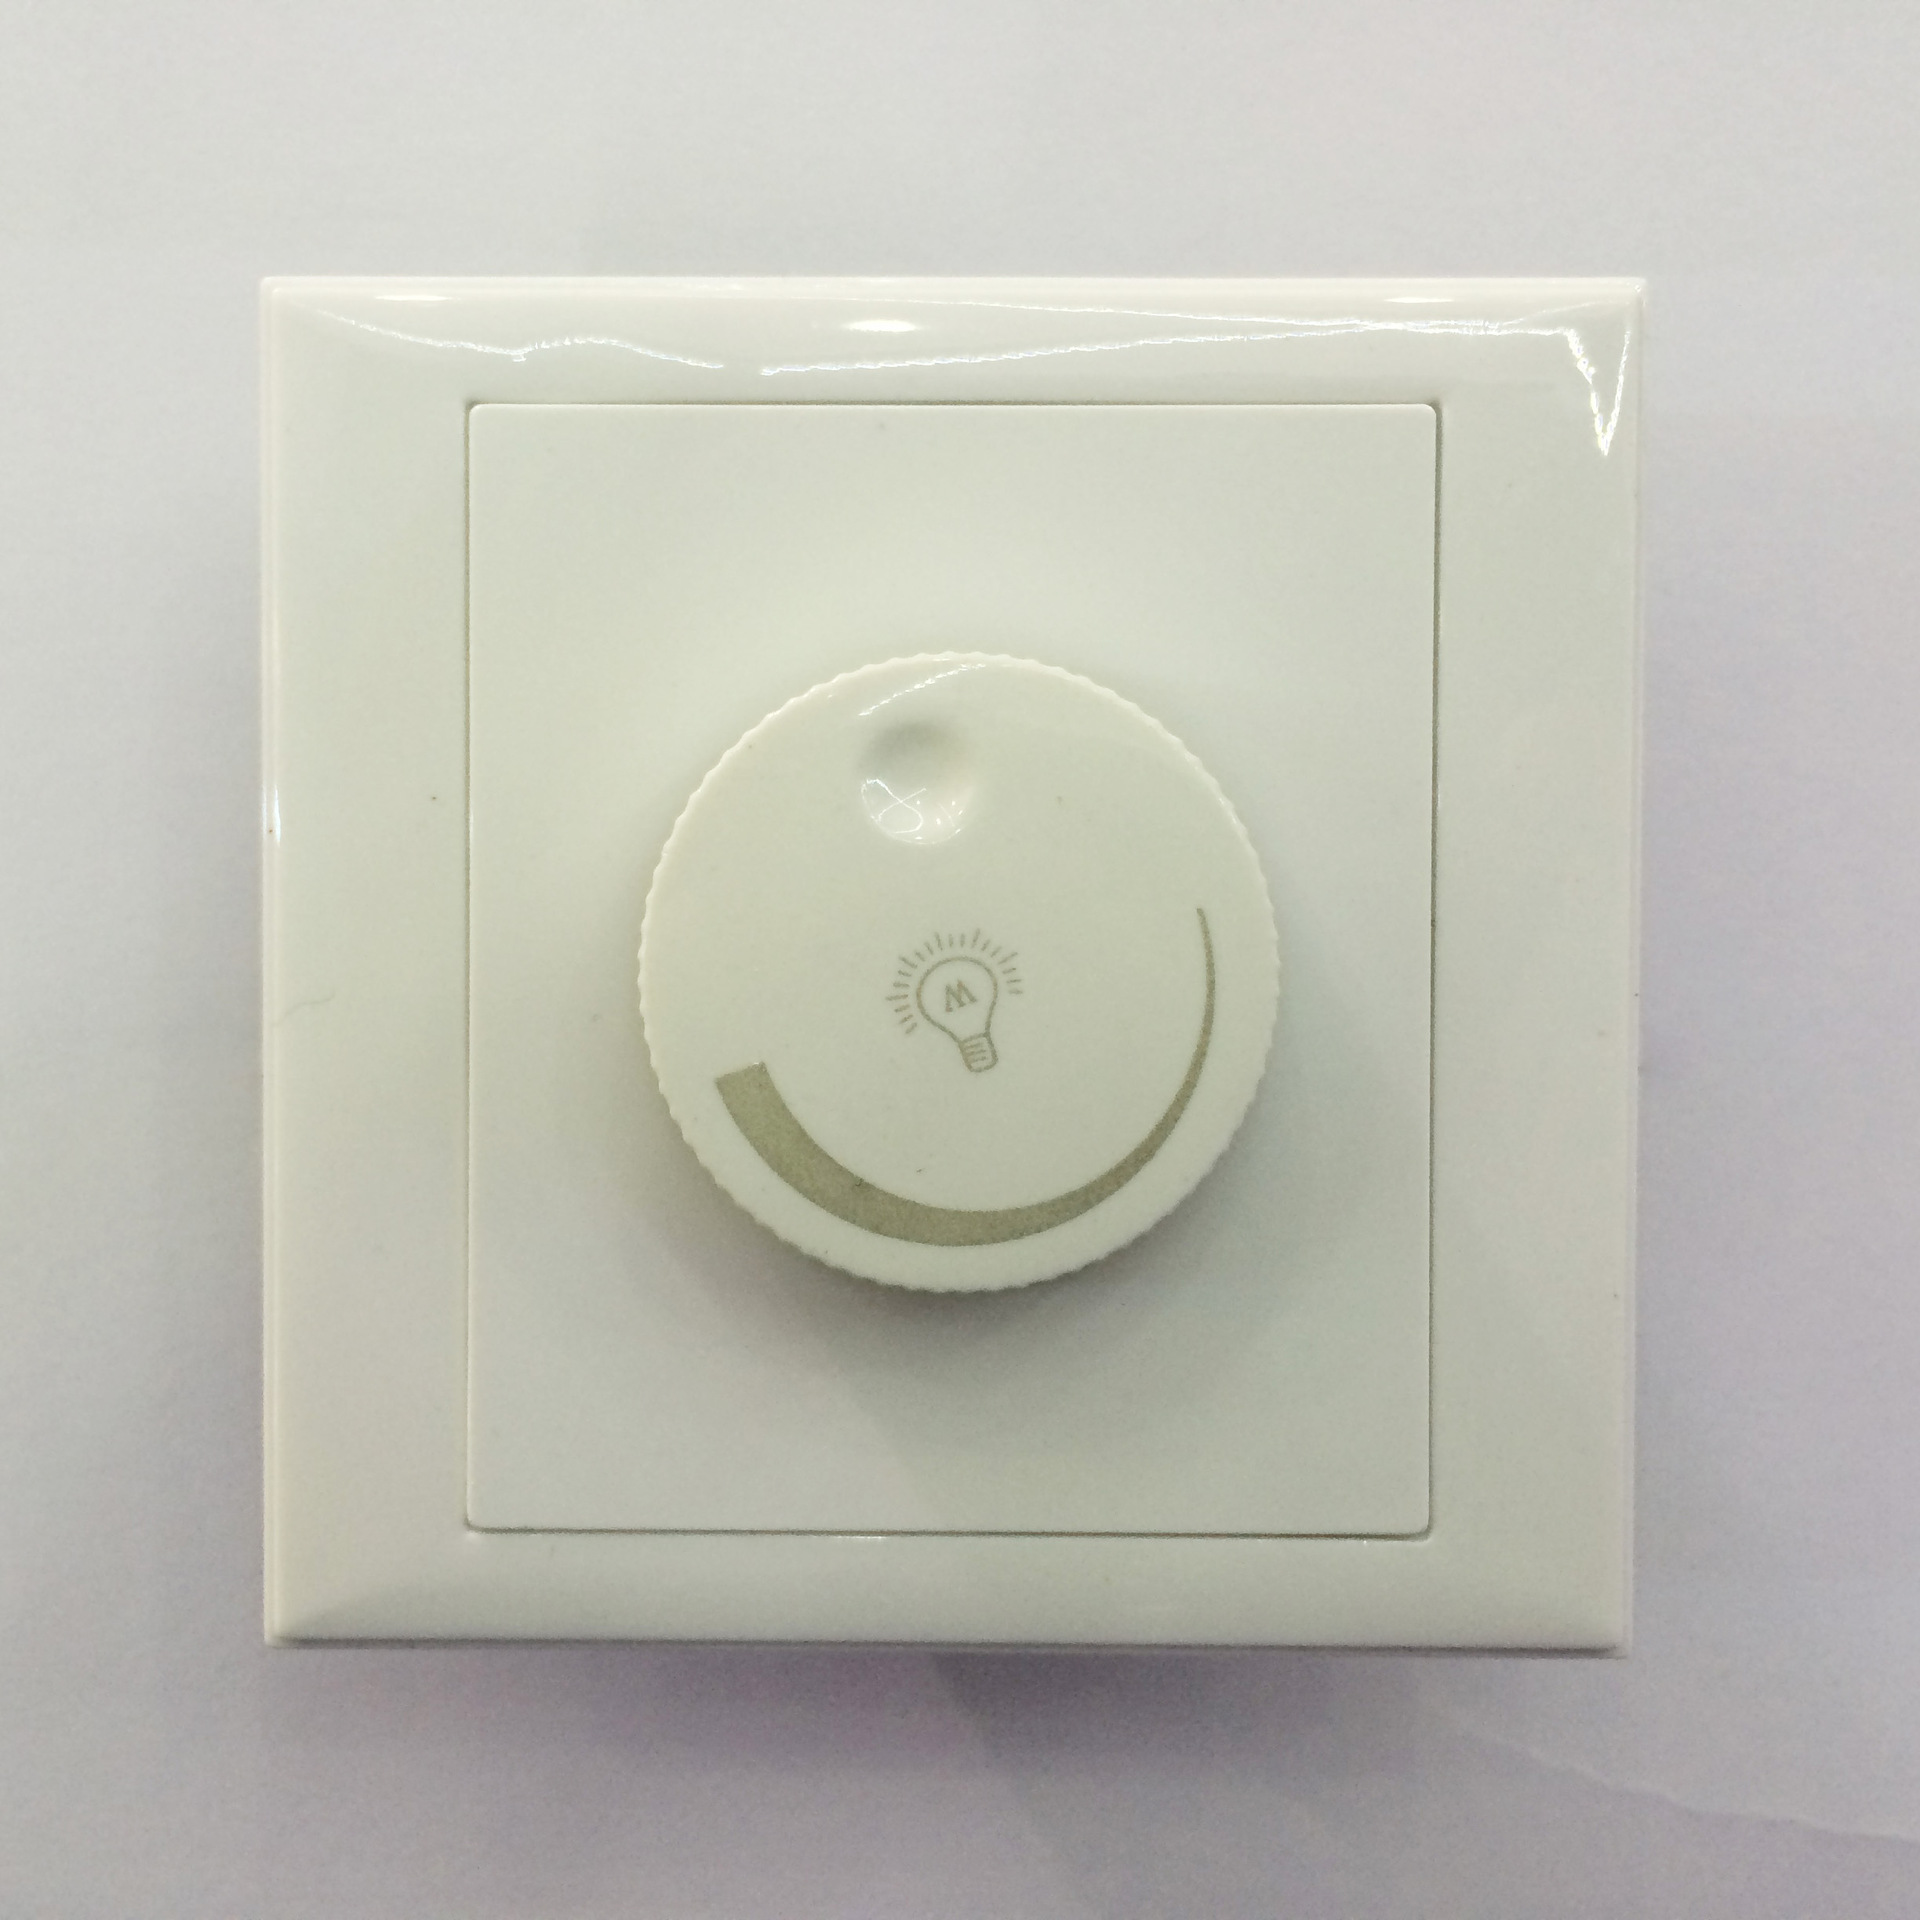 Hong Kong Schneider Electric High Pressure 110vLED Lamp Silicon Controlled Dimmer 150 W Japan Voltage Bulb Dimmer